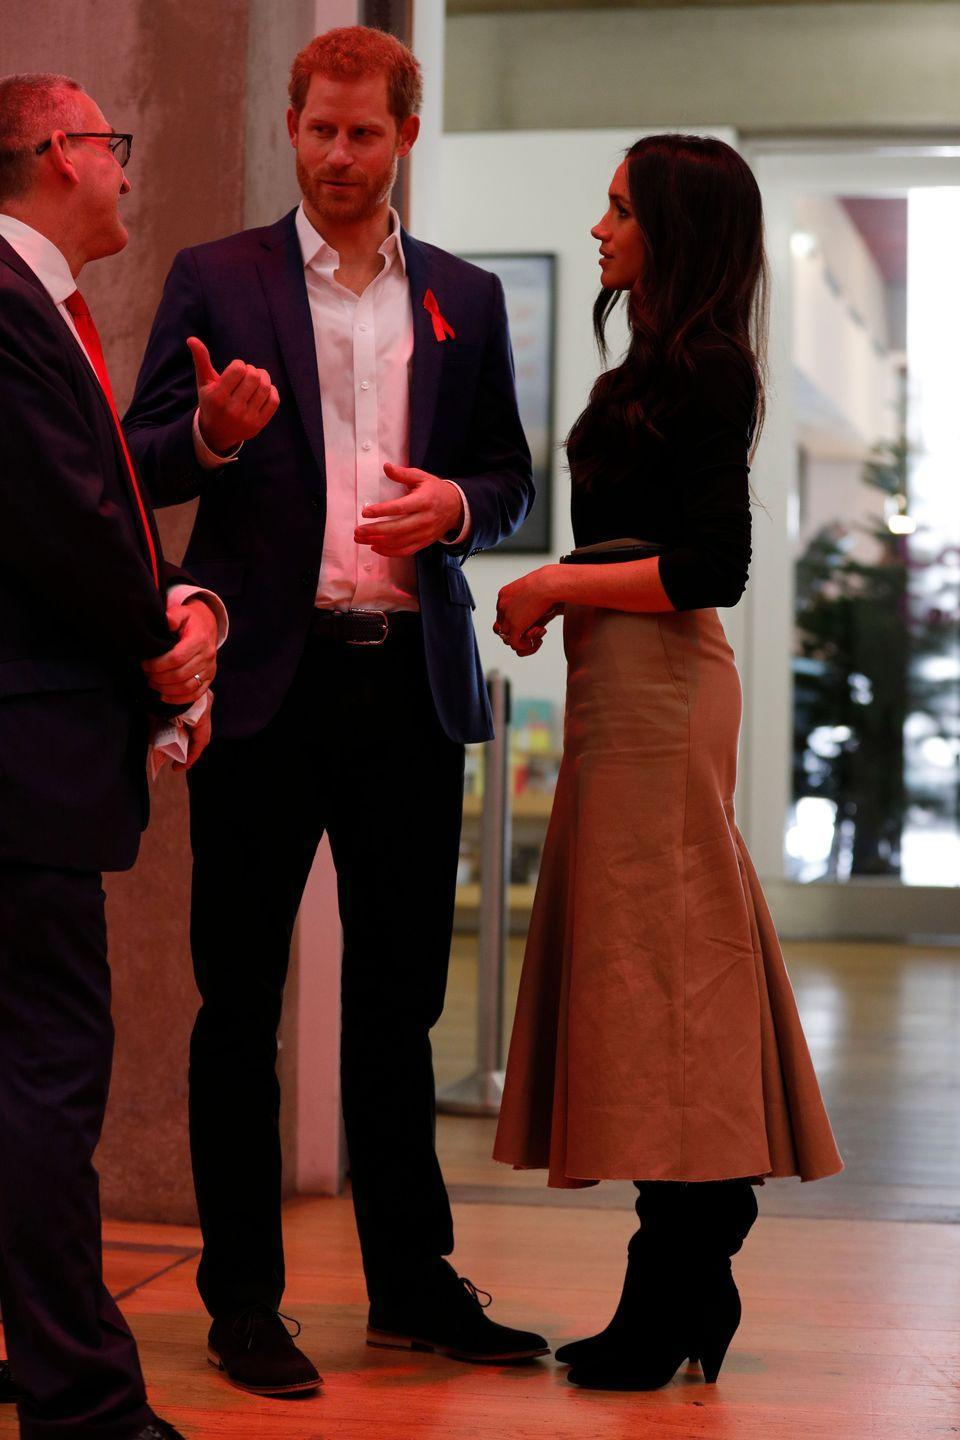 "<p>A look at Meghan's outfit without her coat on during her first royal visit to Nottingham. Her boots are <a href=""https://www.kurtgeiger.com/women/shoes/boots/over-the-knee-boots/violet-black-suede-kg-kurt-geiger?"" rel=""nofollow noopener"" target=""_blank"" data-ylk=""slk:KG Kurt Geiger's &quot;Violet&quot; over-the-knee boots"" class=""link rapid-noclick-resp"">KG Kurt Geiger's ""Violet"" over-the-knee boots</a>. </p>"